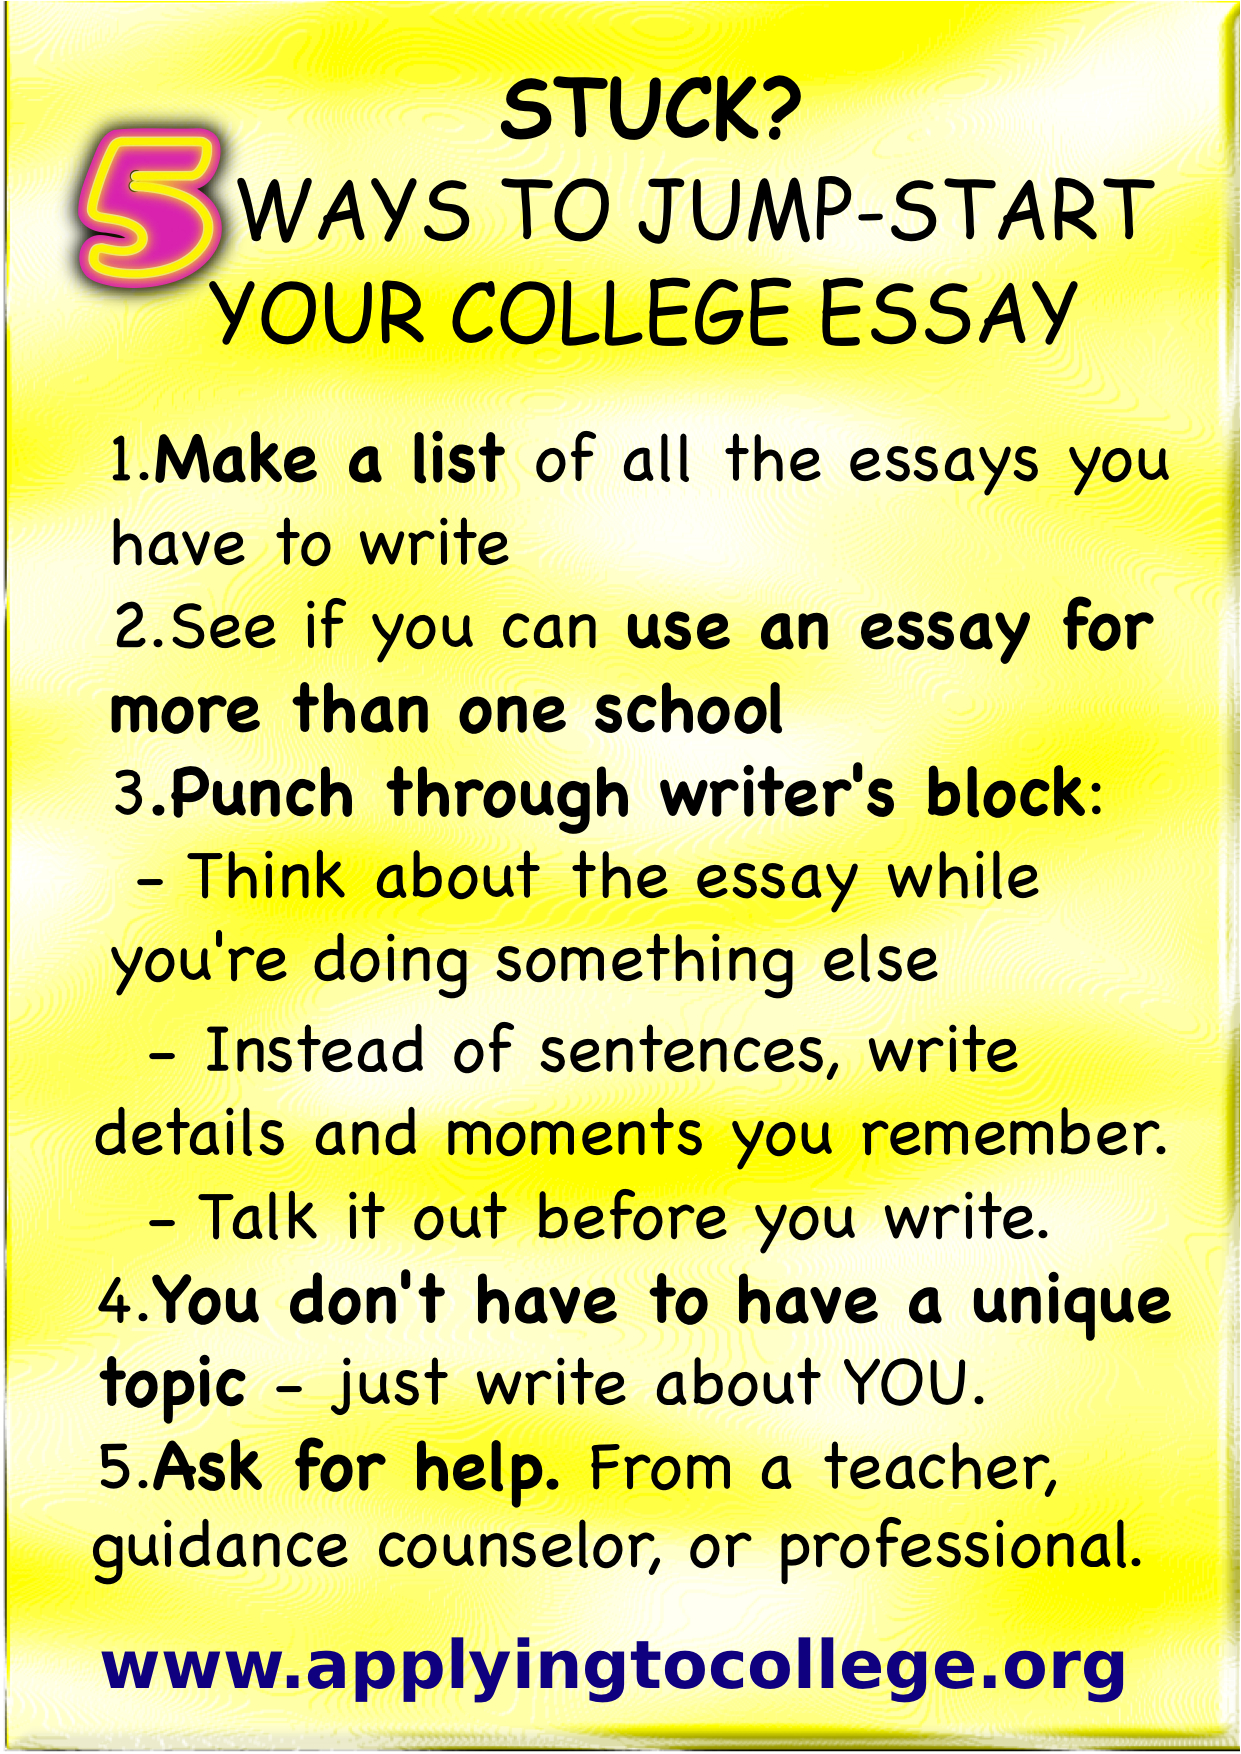 002 Essay Example Tips For Writing College Essays Ways To Reduce Singular 10 Good Application Best Full